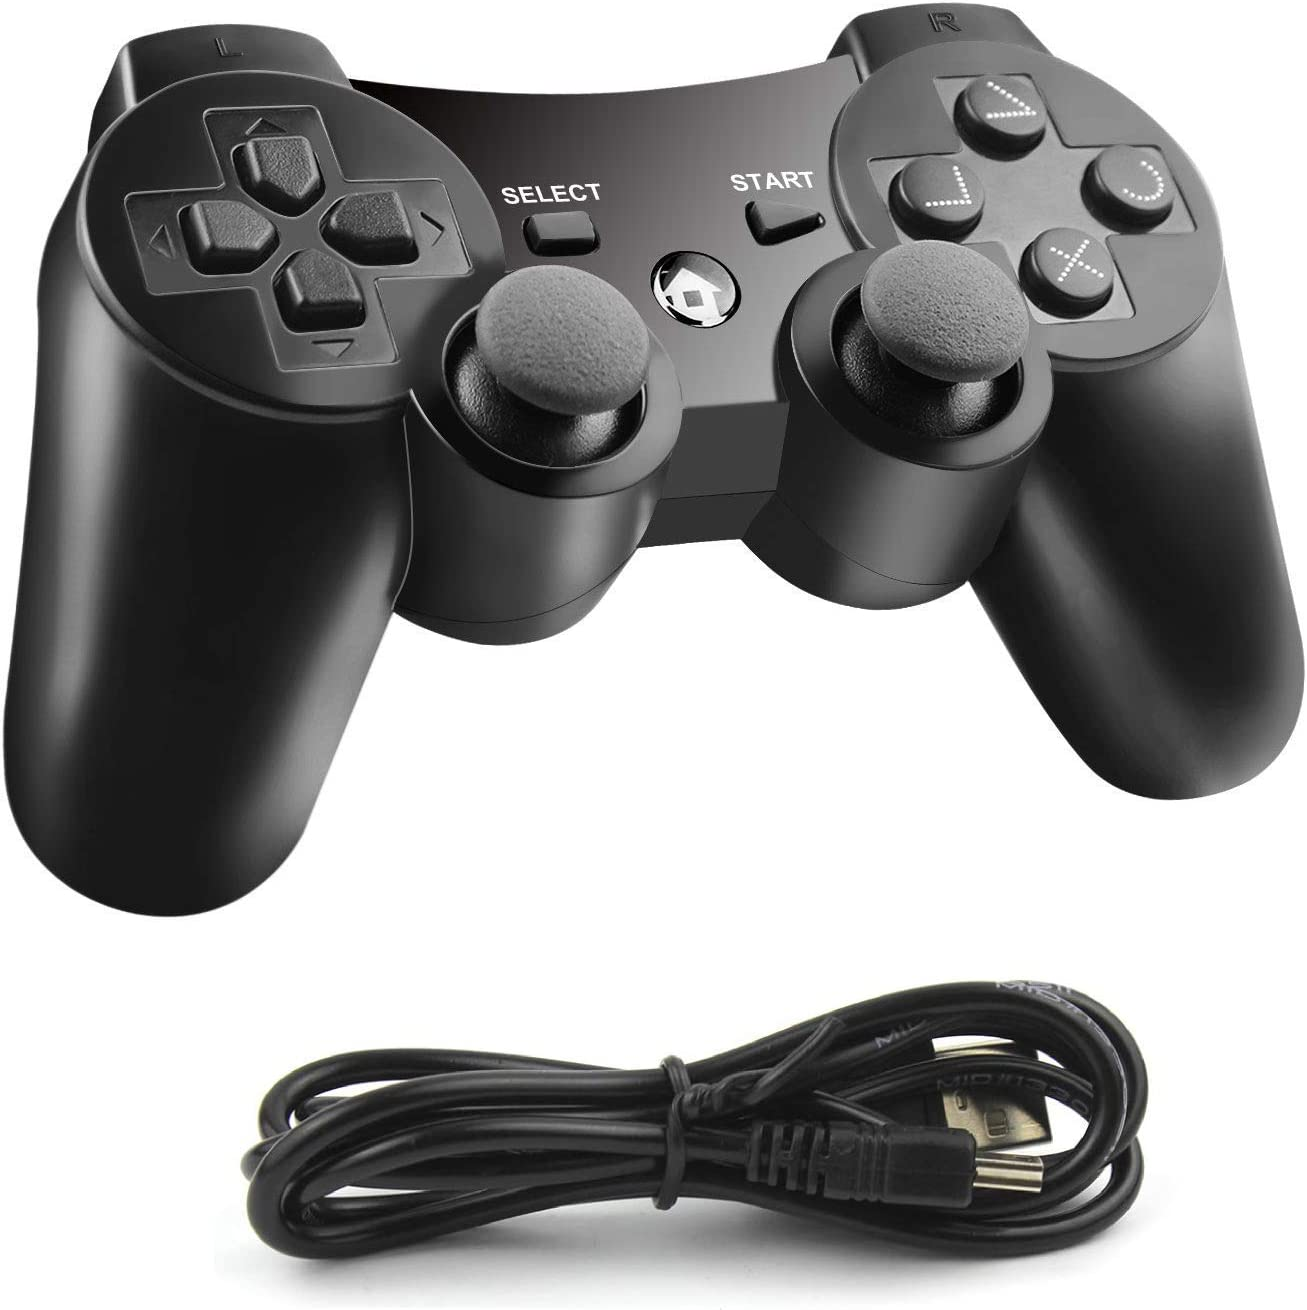 JAMSWALL PS3 Controller, Wireless Bluetooth Joystick, Dualshock3 Gamepad for Playstation 3 with Charger Cable Cord, Black